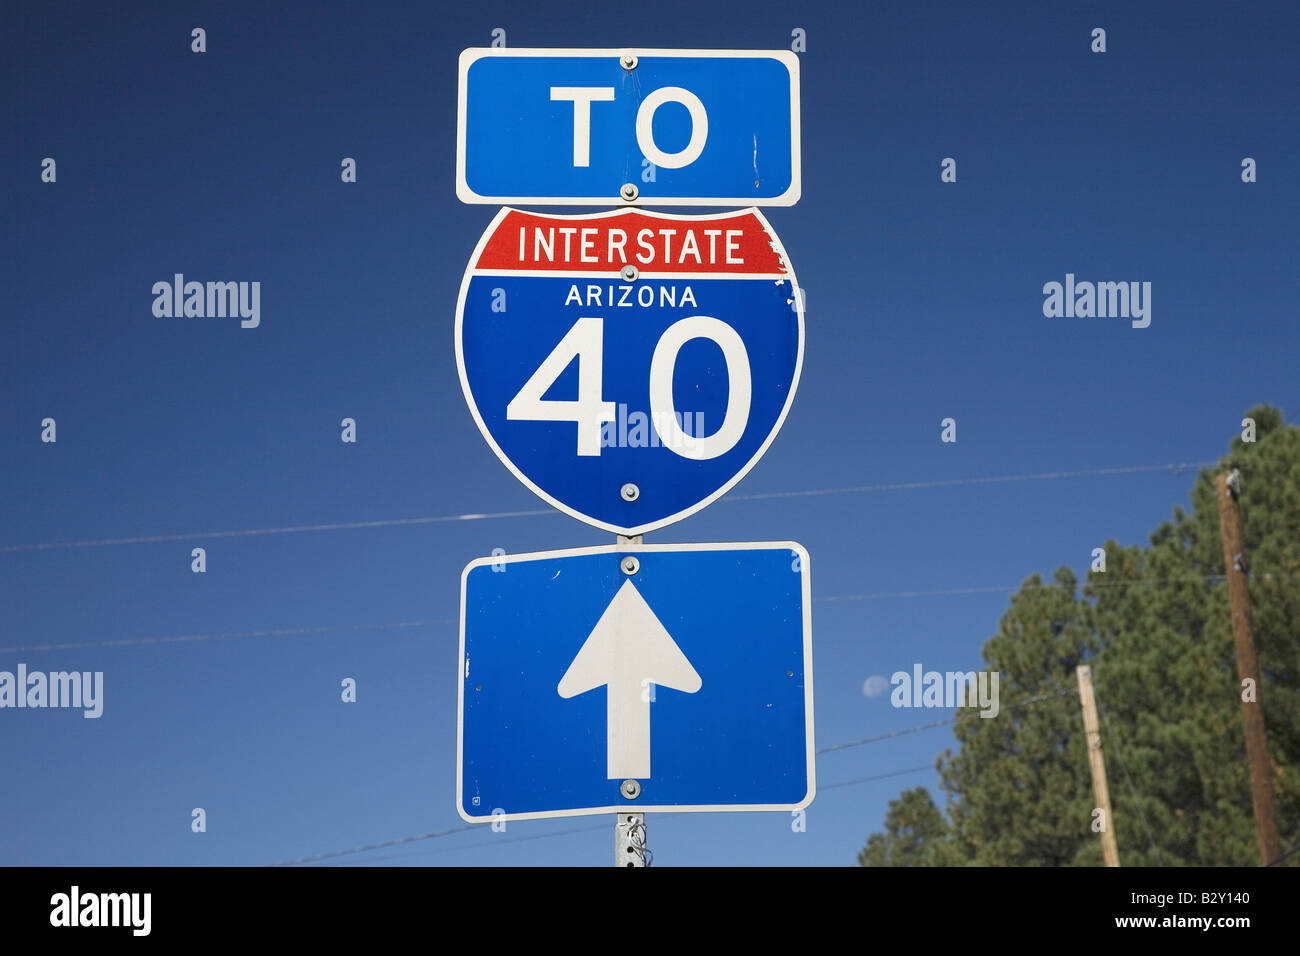 Road sign for Interstate 40 in Arizona - Stock Image